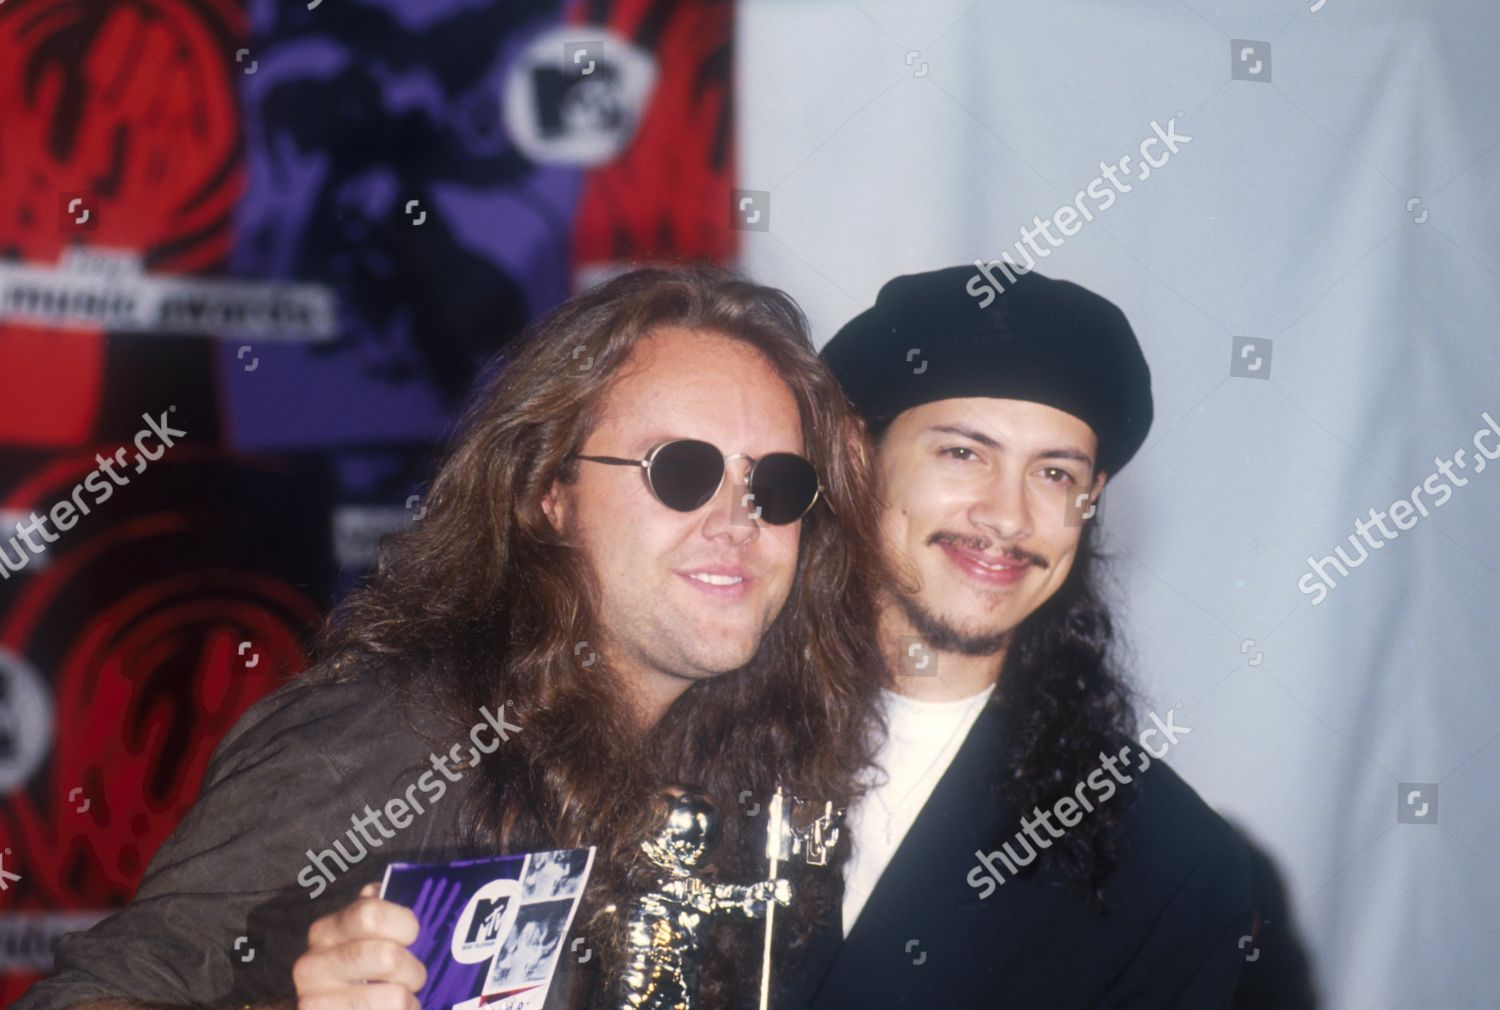 """Kirk Hammet interview on GN'R guys becoming """"unacessible"""" and a """"third party"""" account of the Axl feud with Kuurt Cobain Metallica-shutterstock-editorial-437644r"""